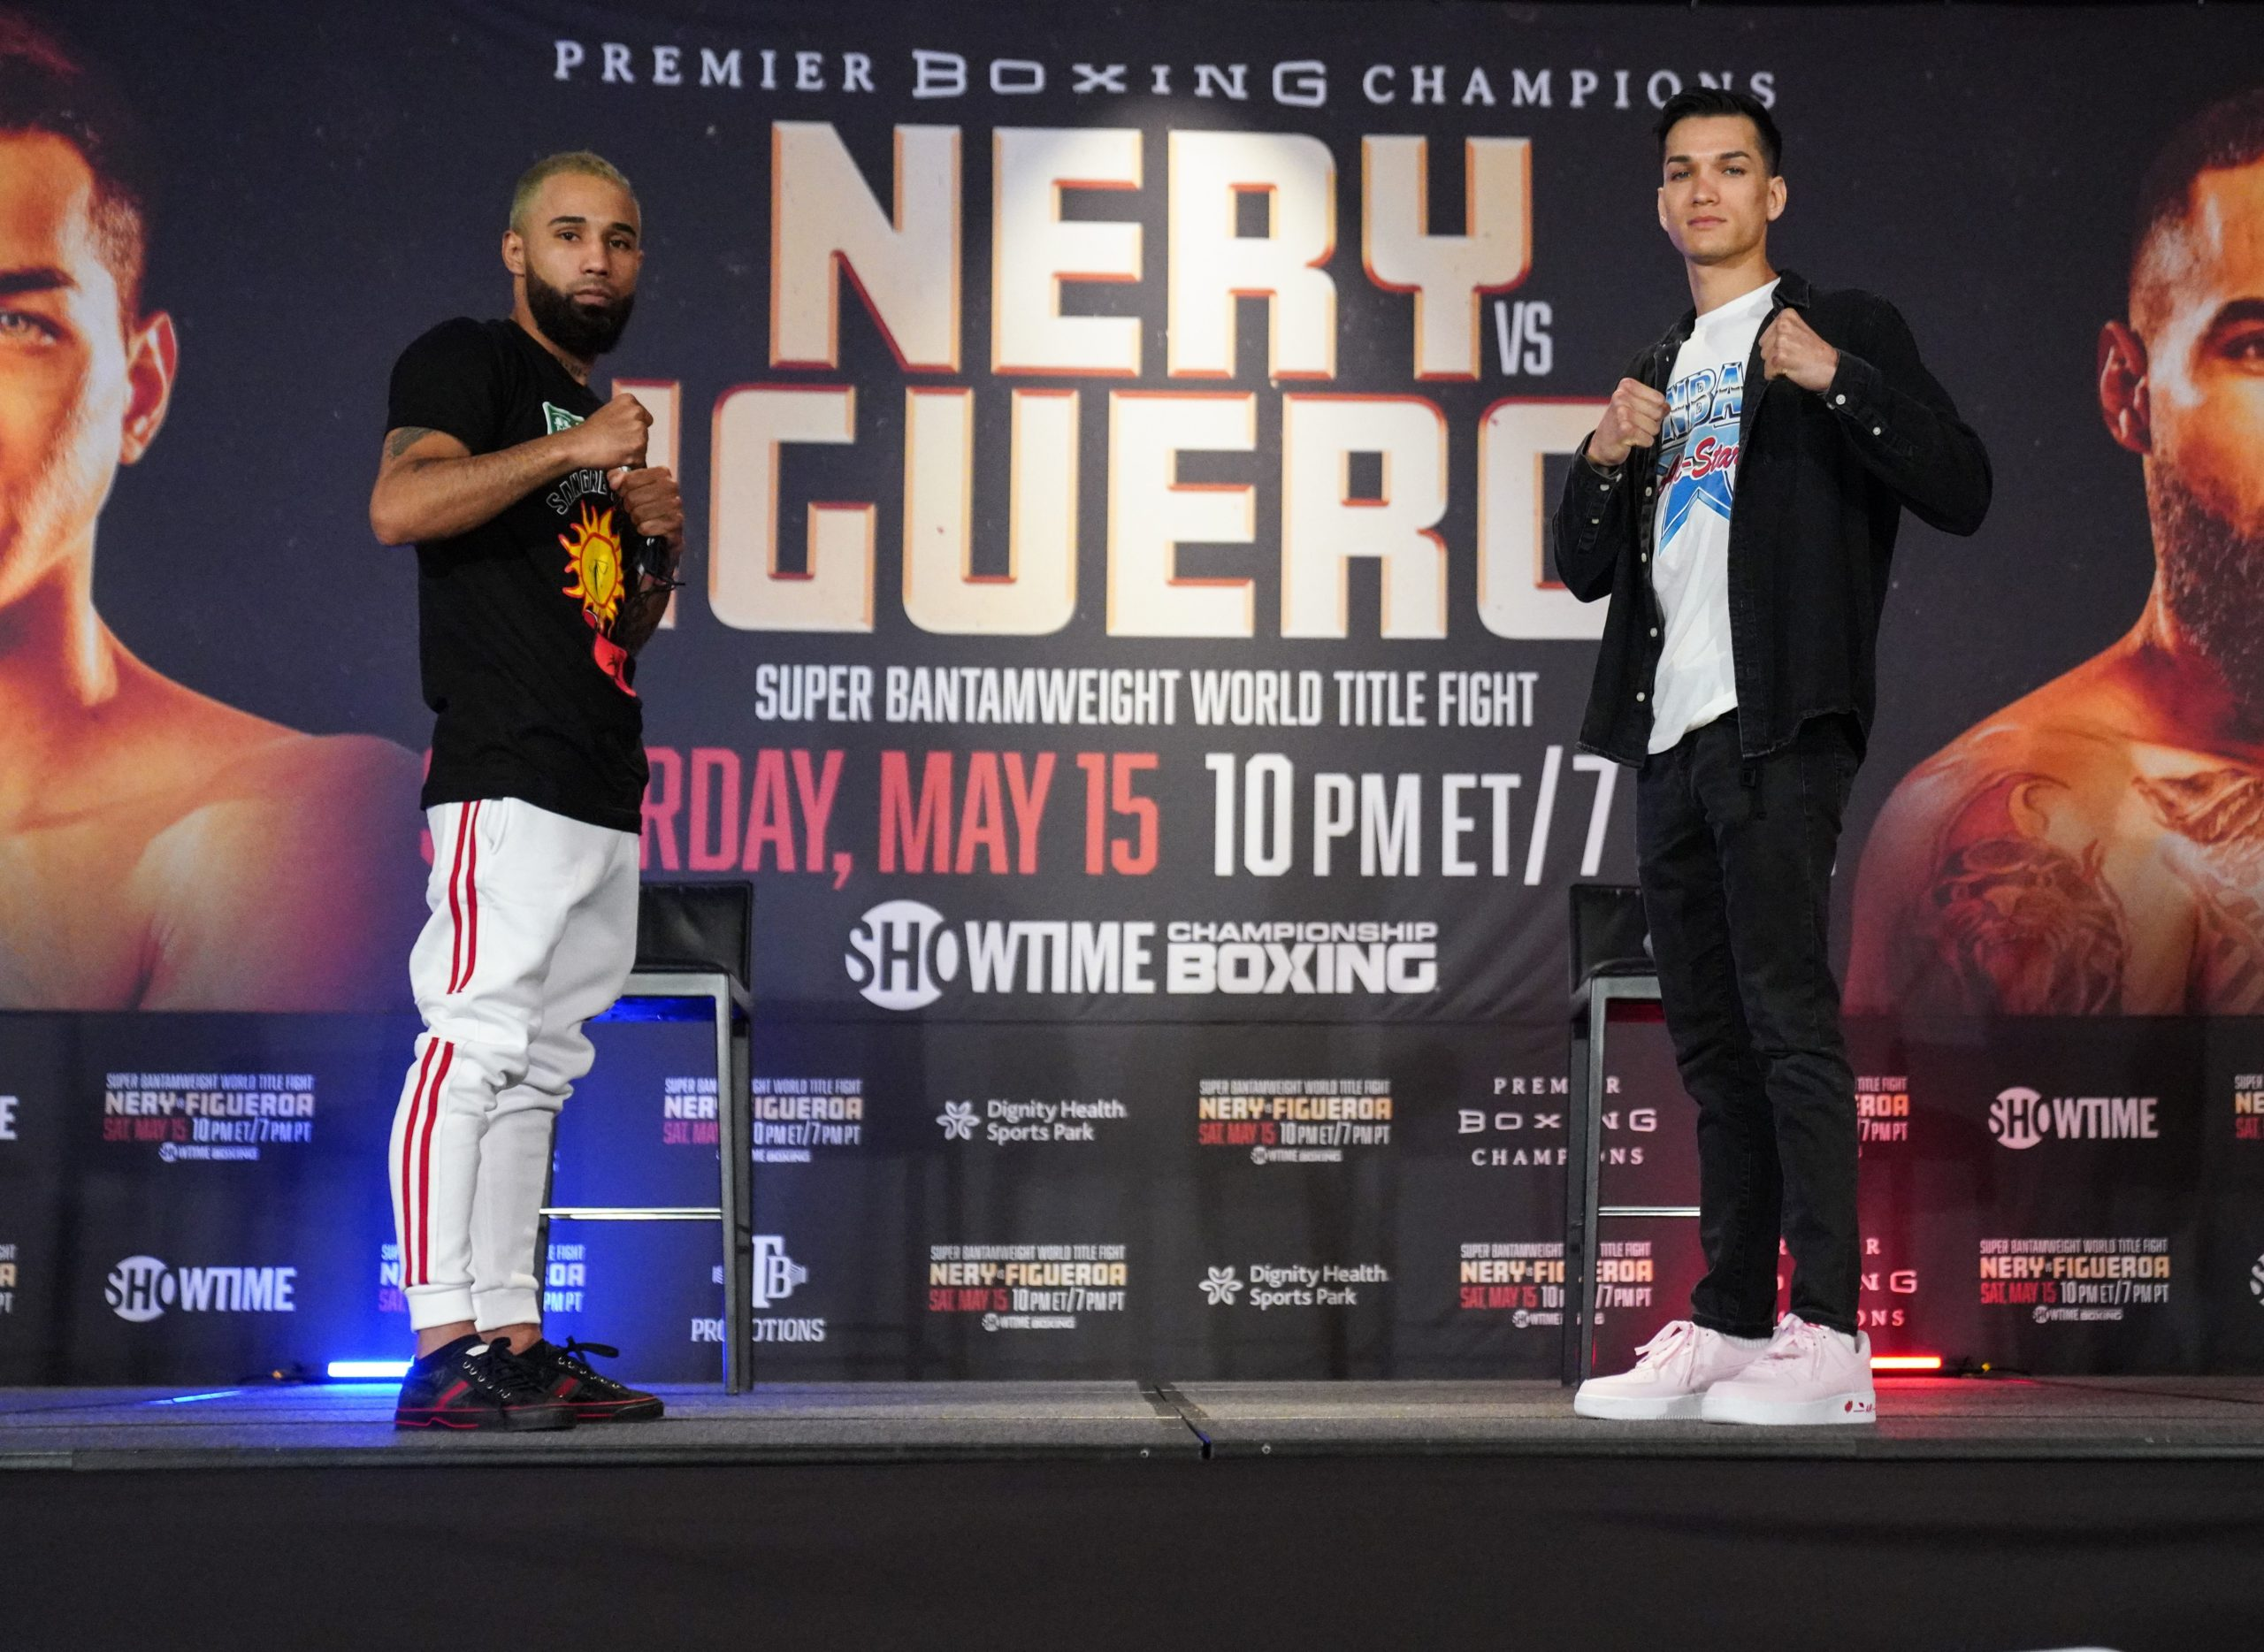 Figueroa and Nery promise an action-packed fight